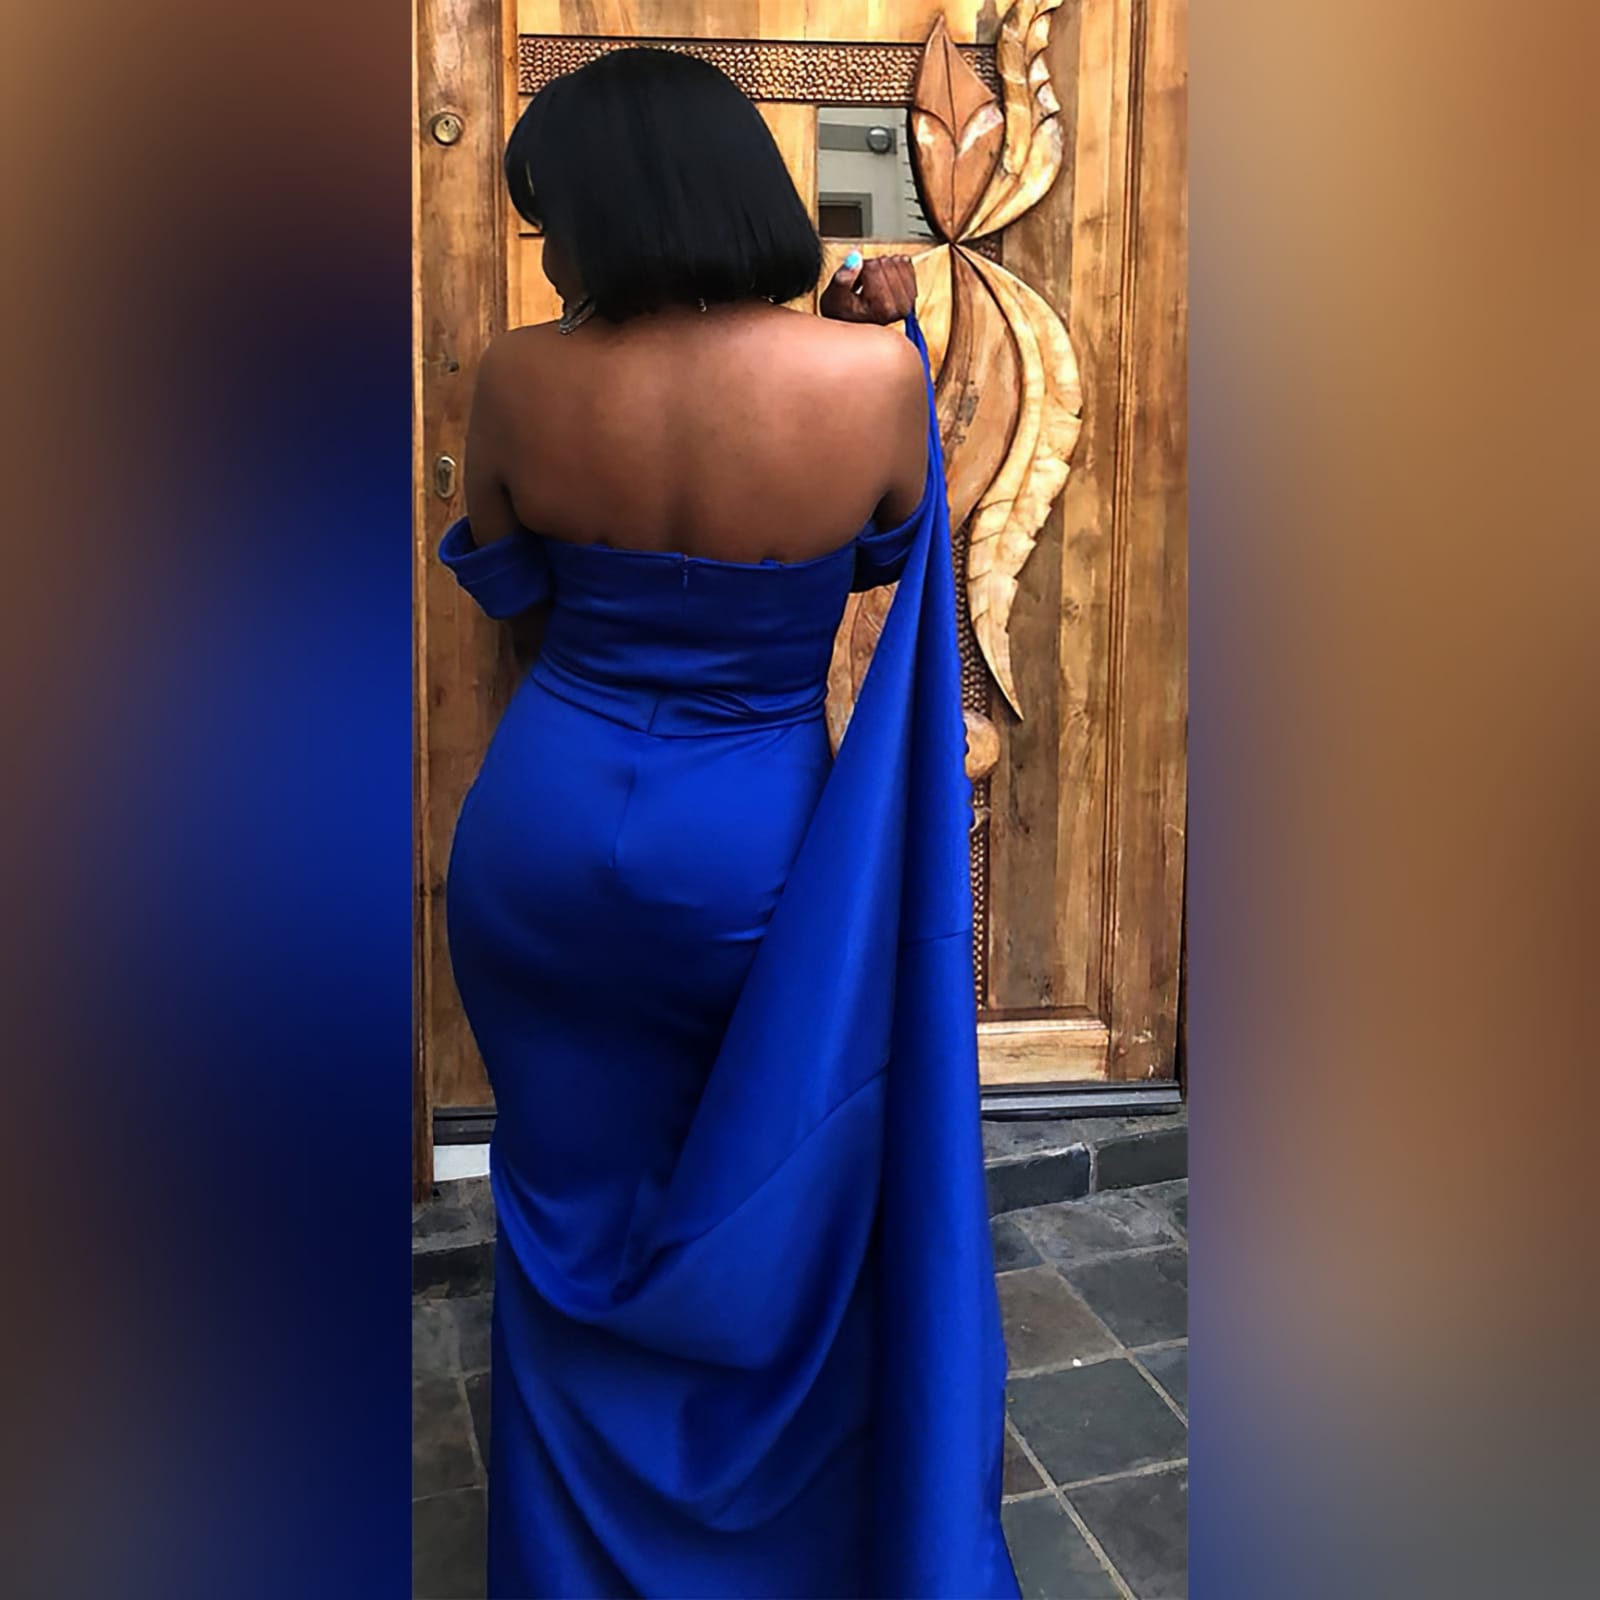 Simple royal blue soft mermaid dress 6 a simple royal blue soft mermaid dress, created for a debutantes ball. With a modern off-shoulder neckline and off-shoulder short sleeves. A belt effect to enhance the waist and a train for a touch of drama.